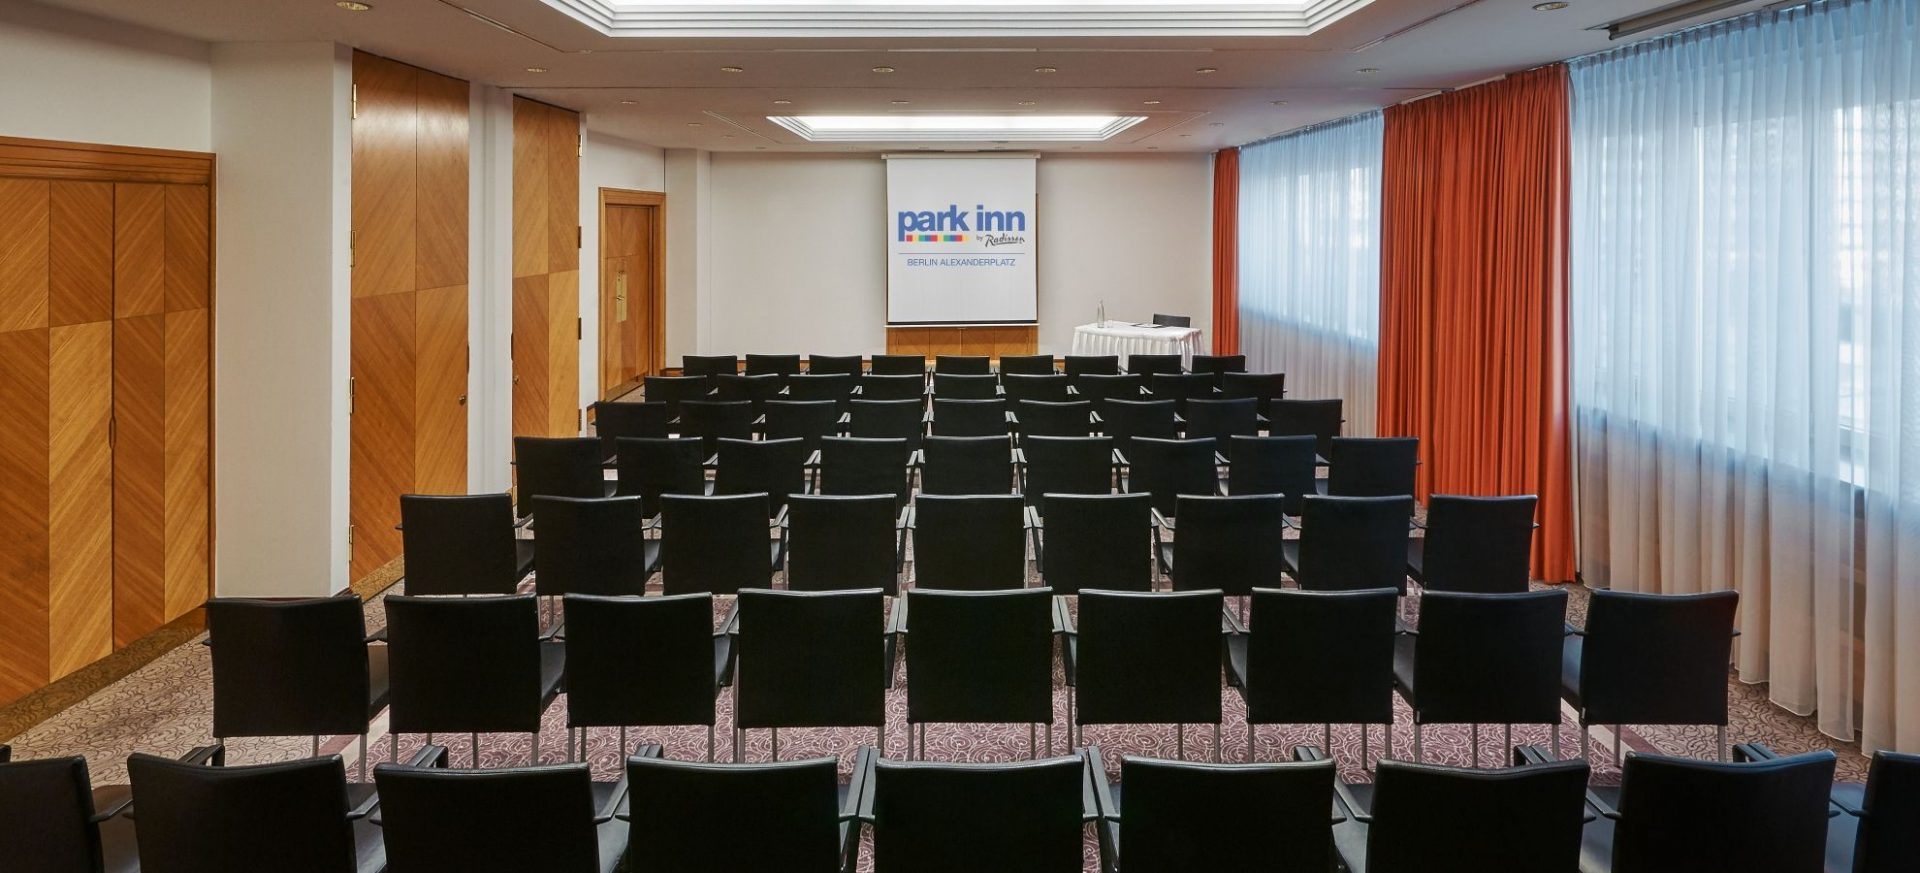 Park Inn Berlin Alexanderplatz Meeting Room